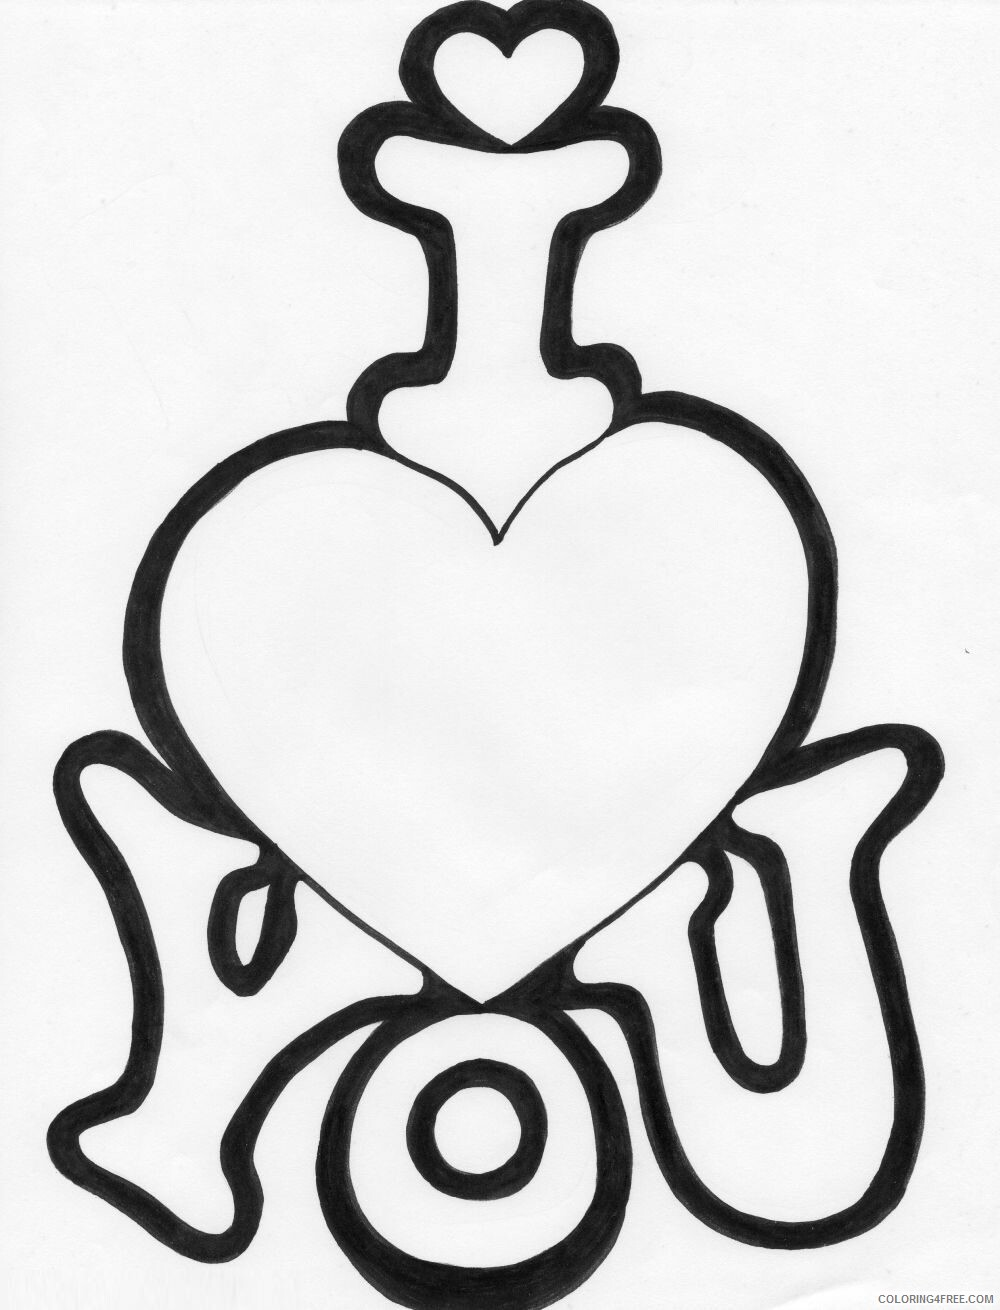 I Love You Coloring Pages I Love you 12 Printable 2021 3470 Coloring4free